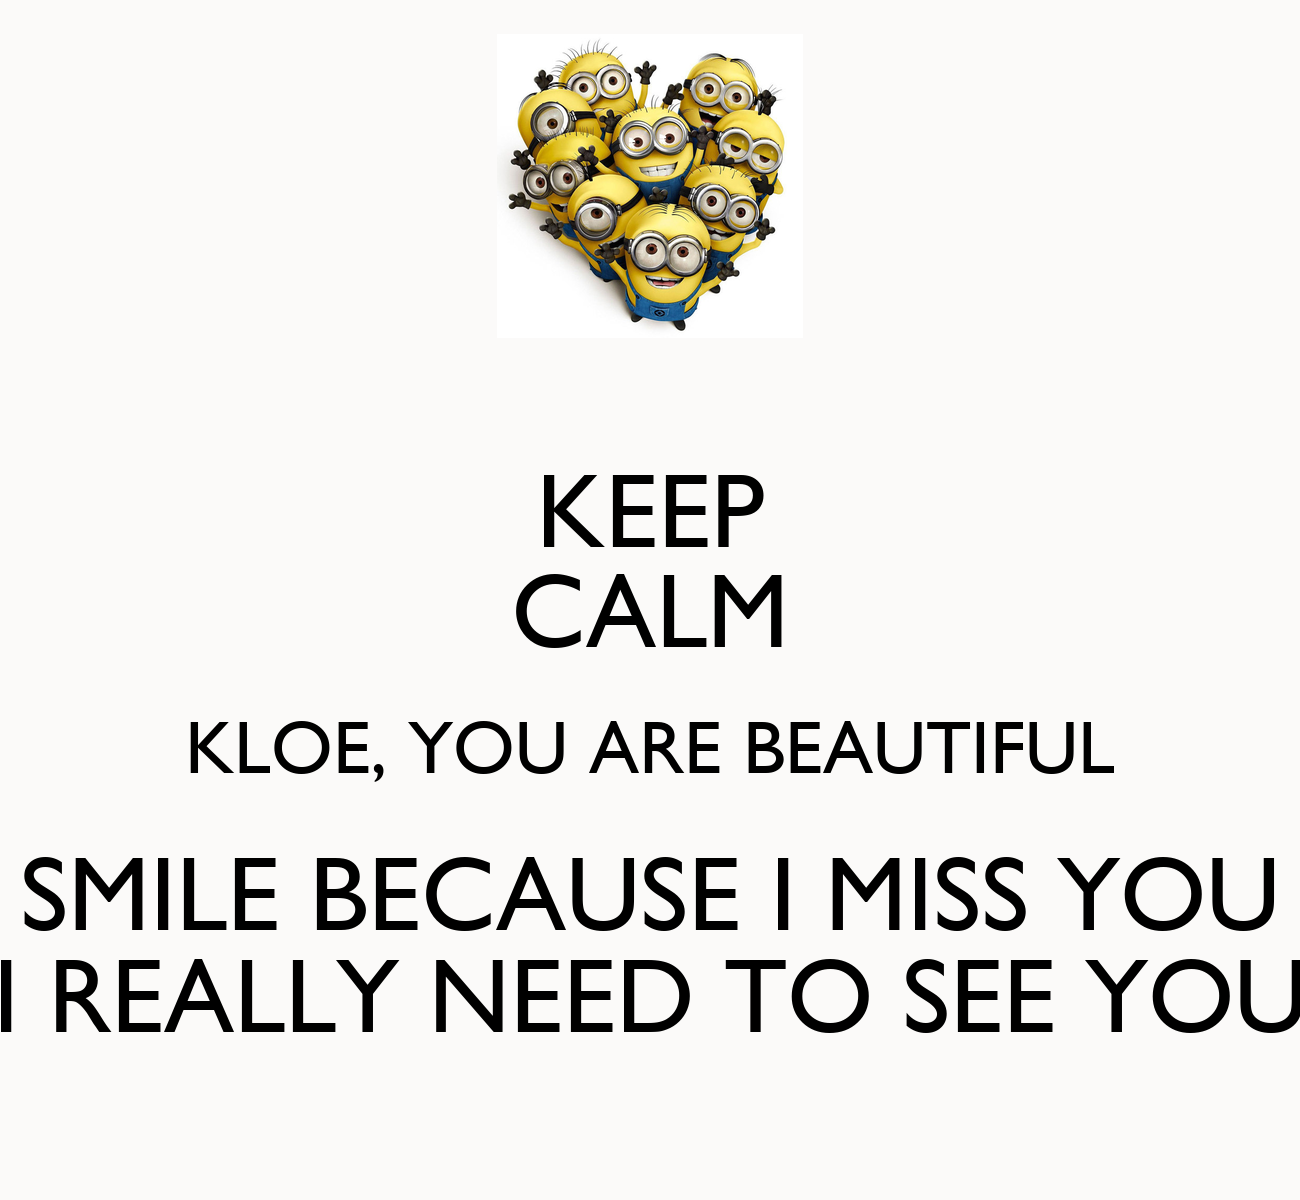 I Want To See You Smile Quotes: KEEP CALM KLOE, YOU ARE BEAUTIFUL SMILE BECAUSE I MISS YOU